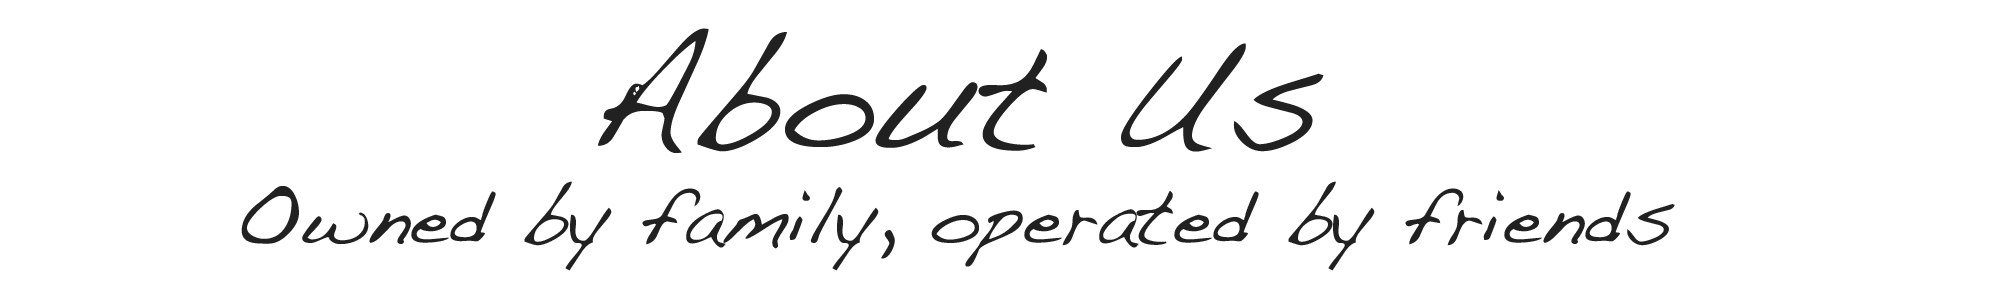 aboutus-text.png